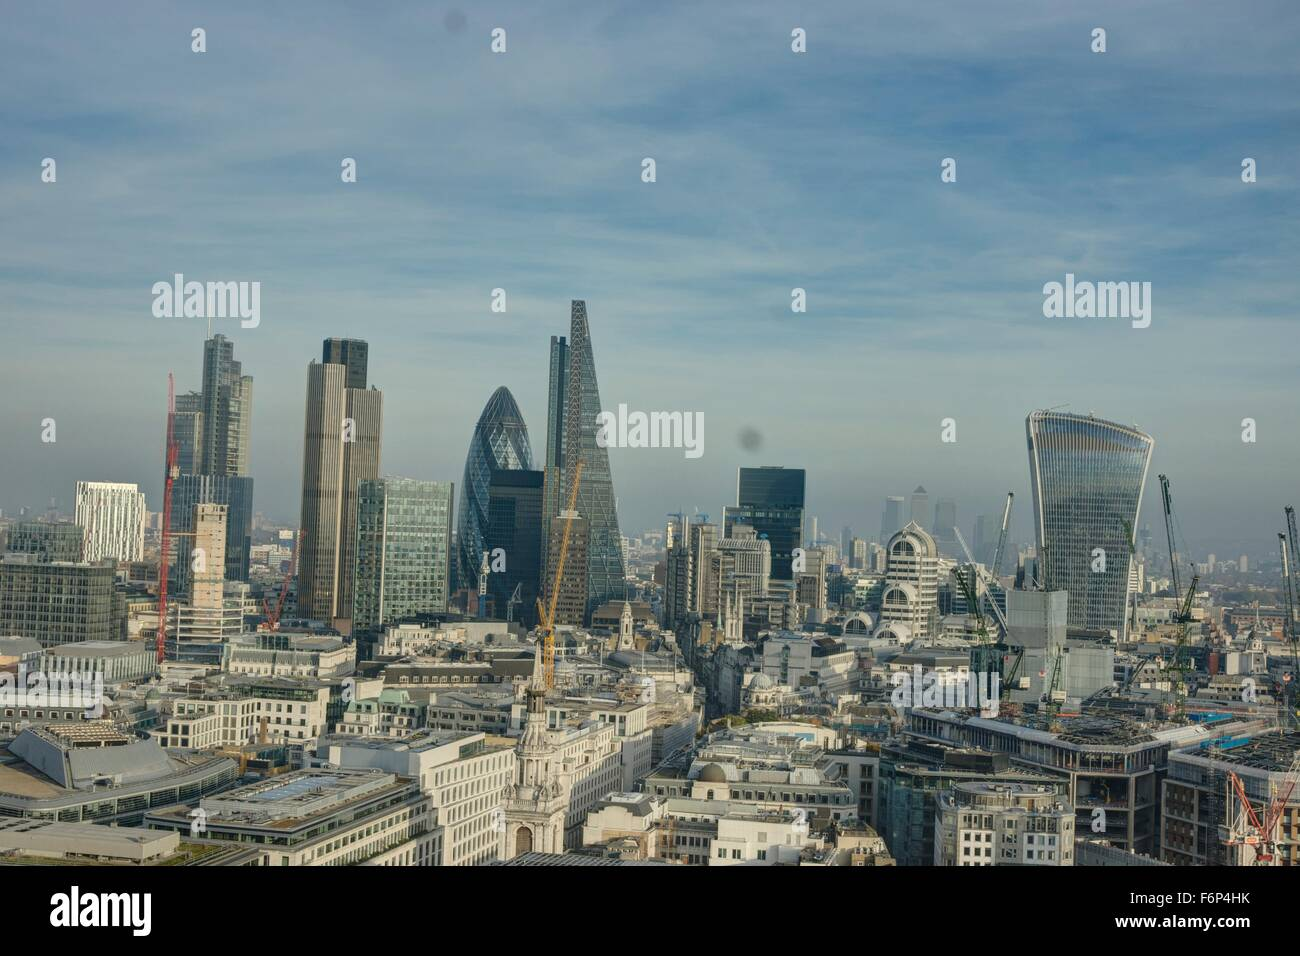 city of London,  tall buildings,  financial district, sky scrapers,  city skyline - Stock Image